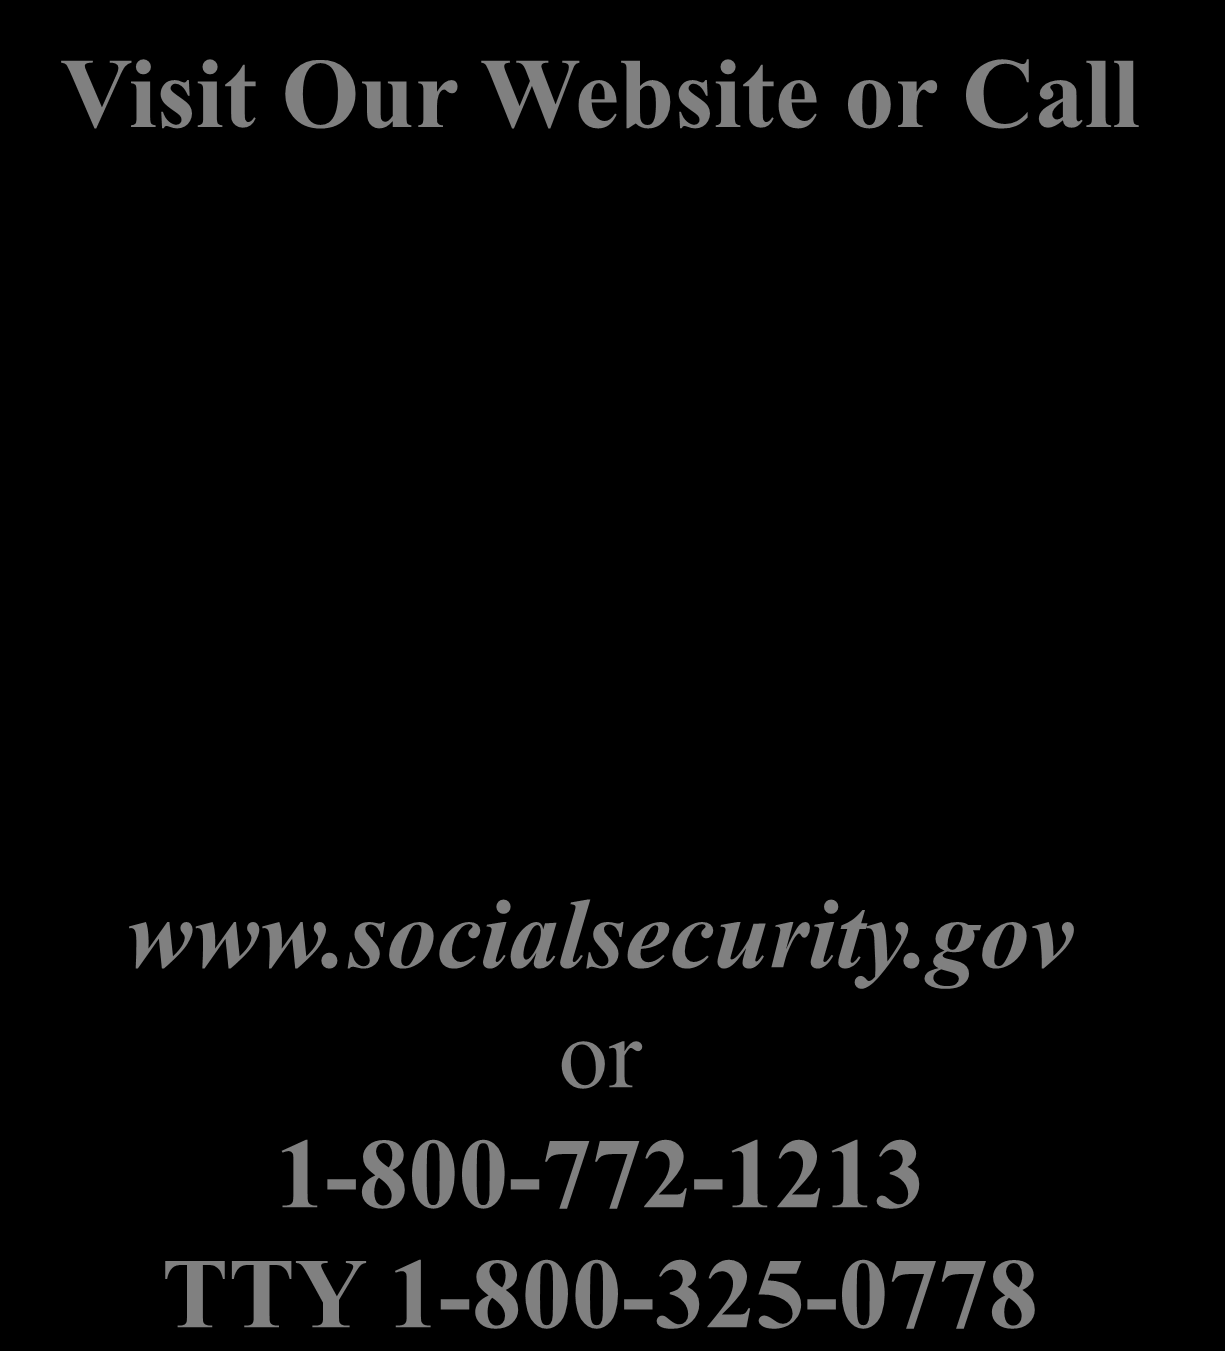 Visit Our Website or Call www.